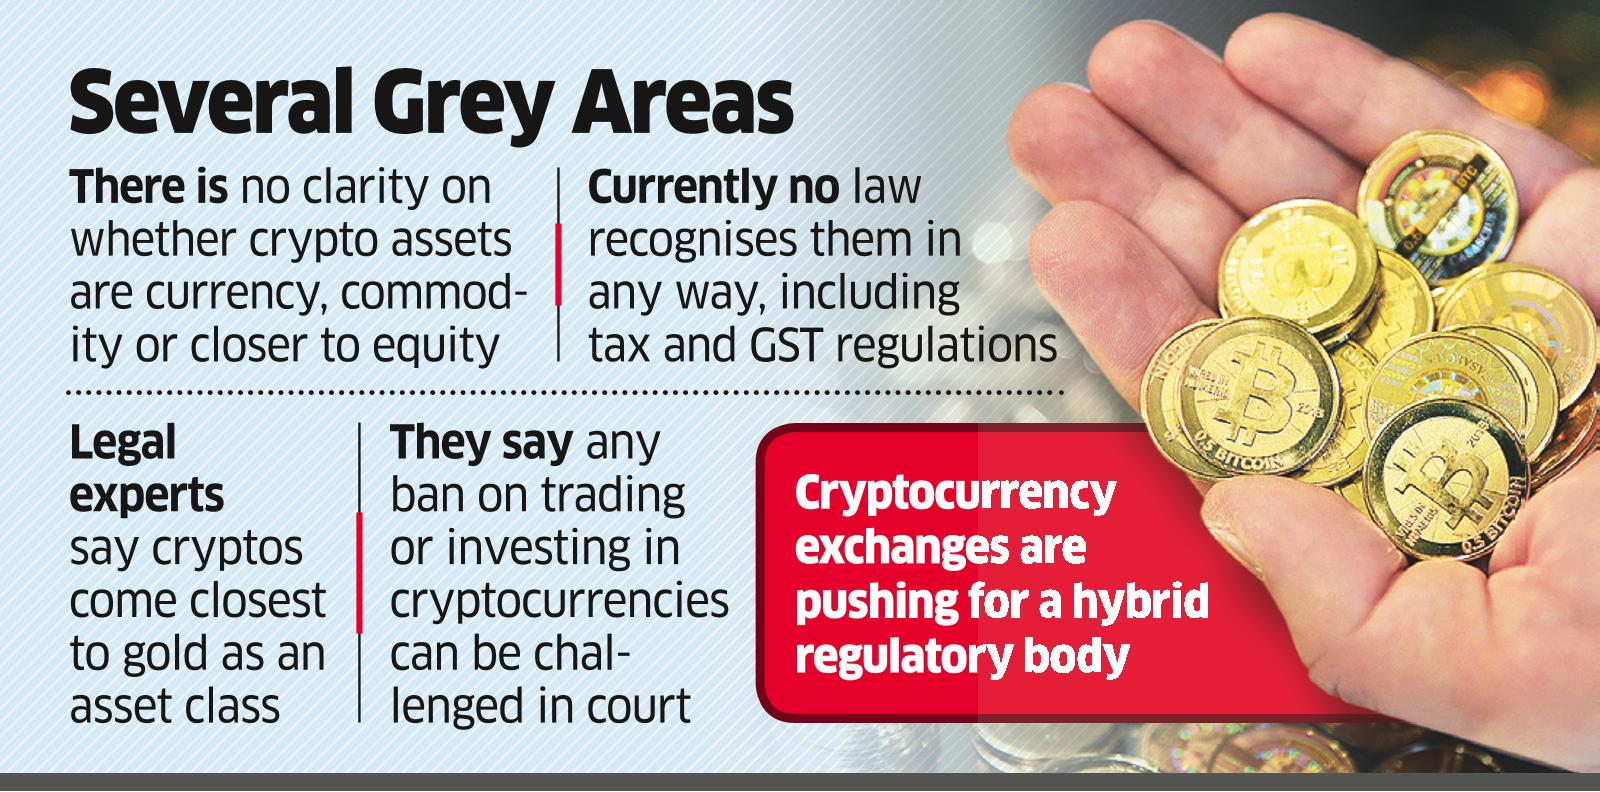 Crypto Exchanges Want Sebi or a New Entity as Regulator, Not RBI